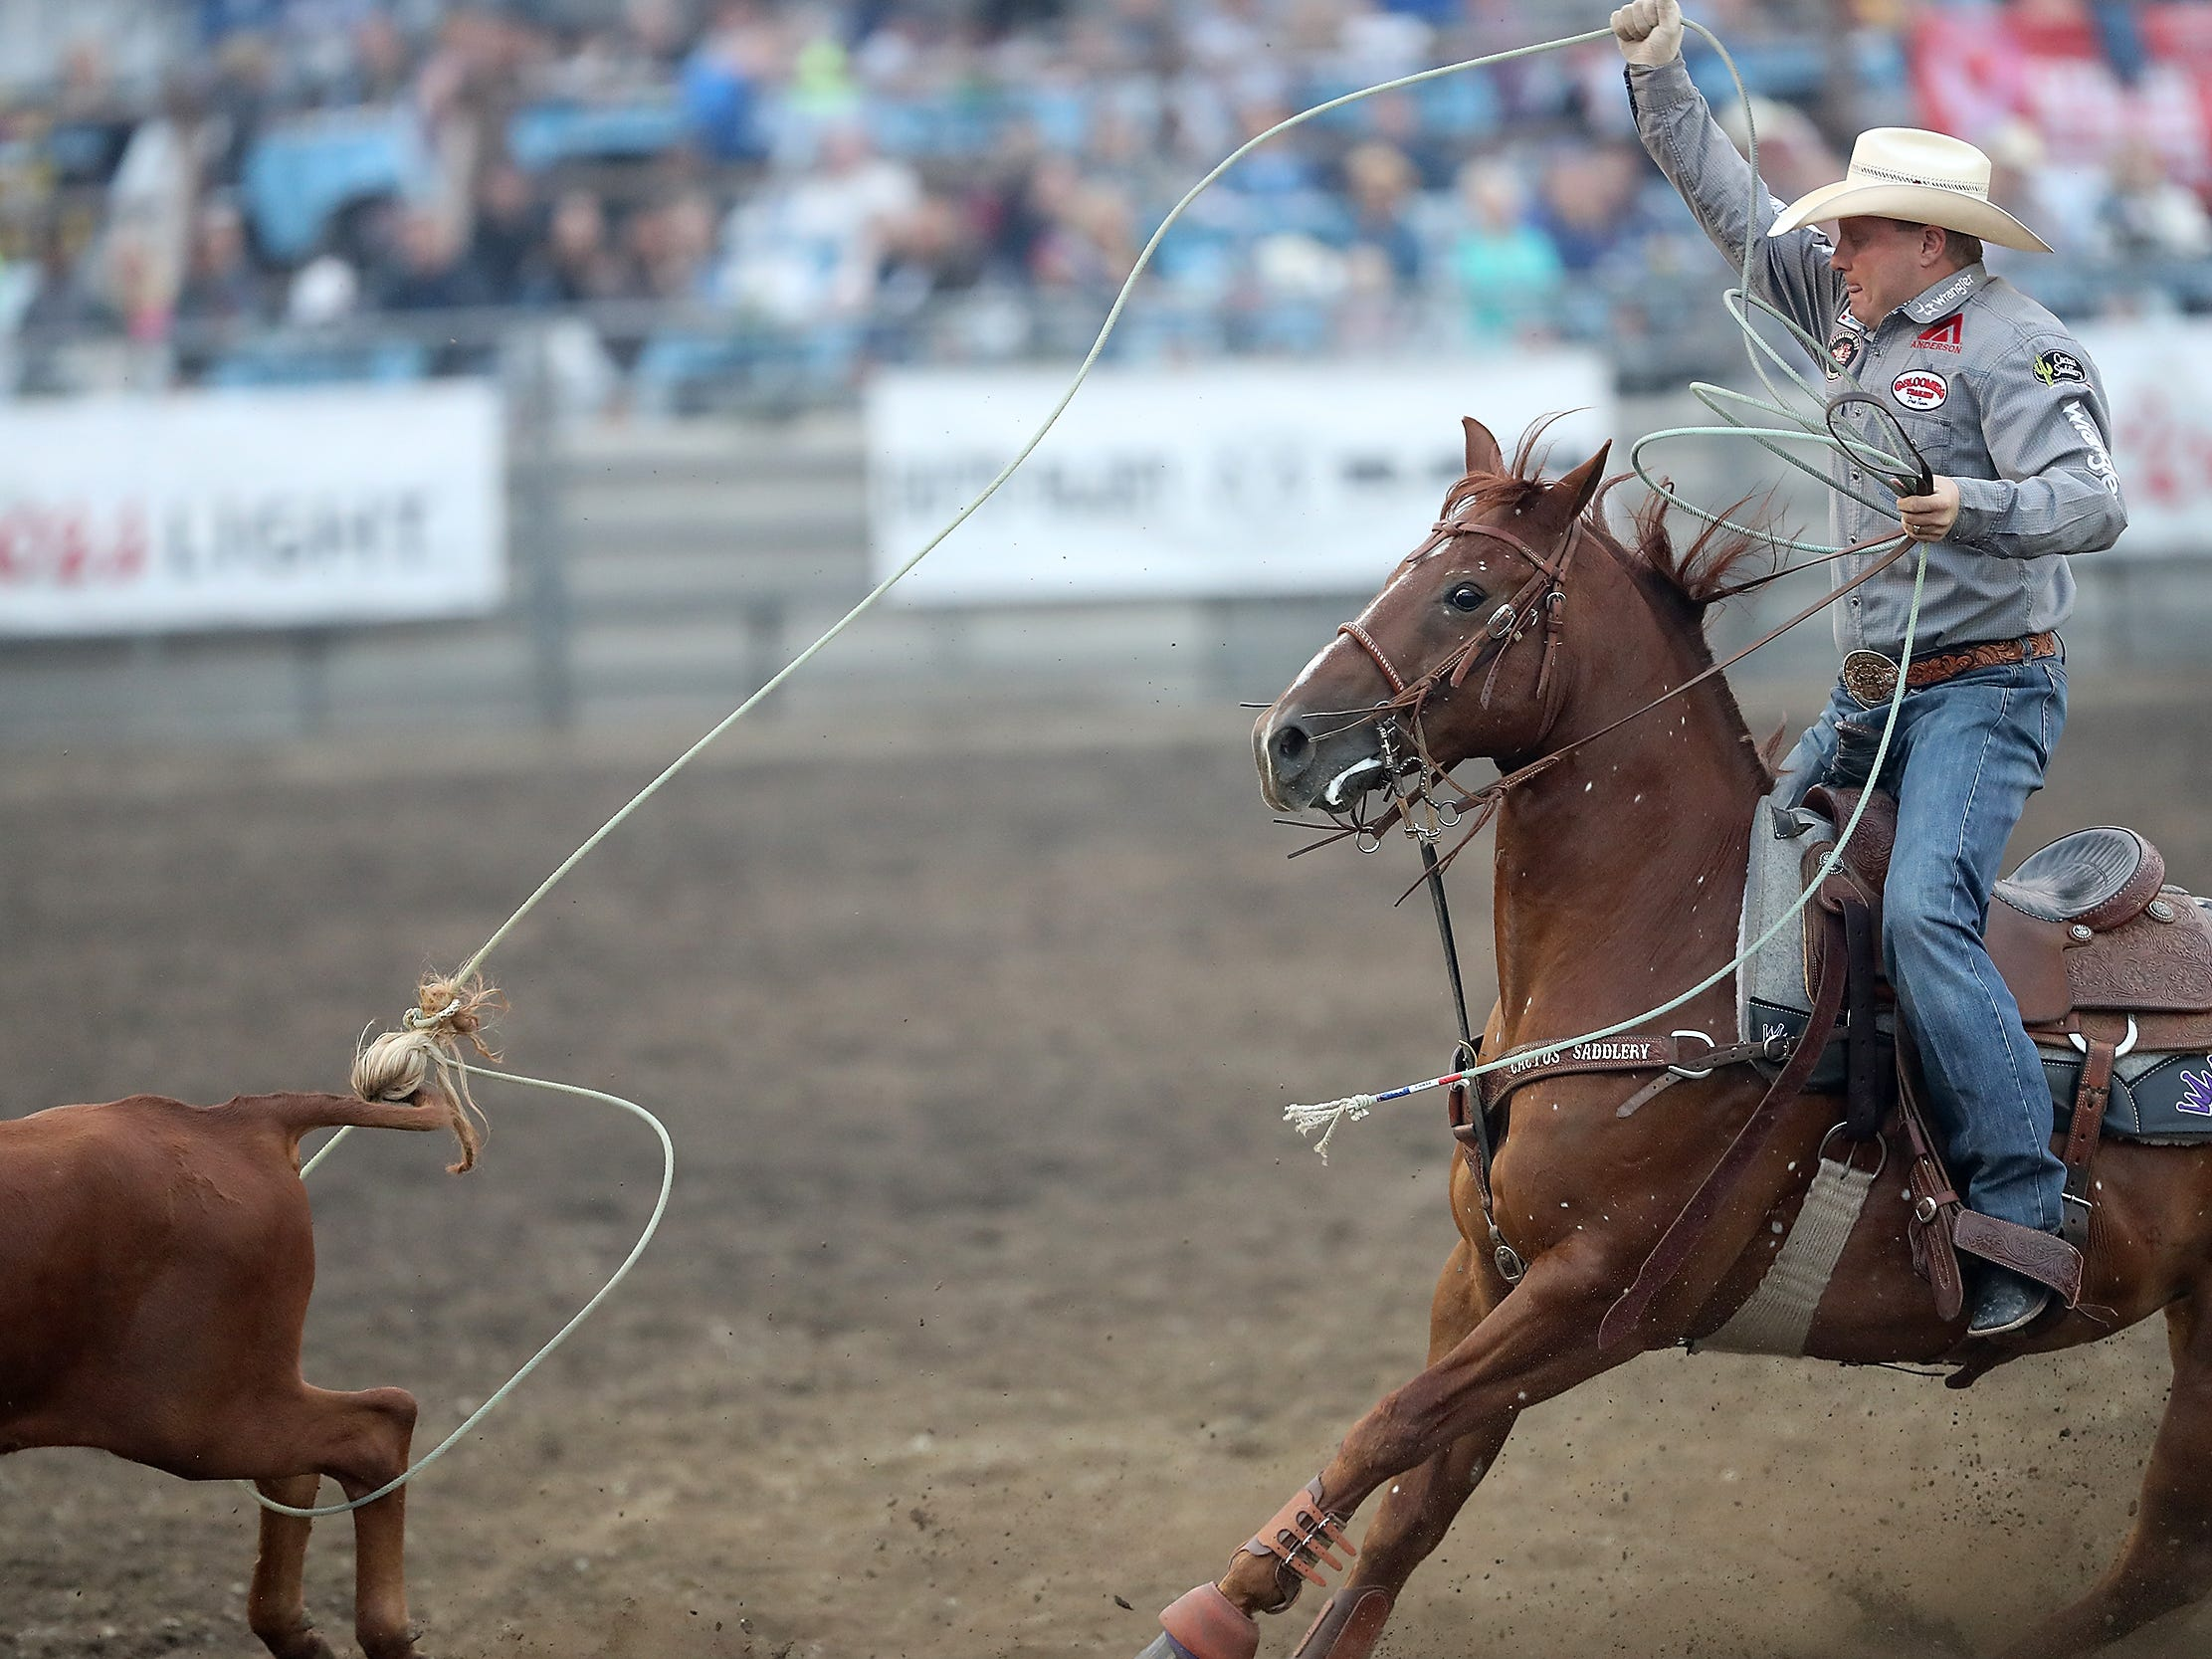 Brady Minor, or Ellensburg, WA,  ropes the heels of a steer during the Team Roping event at the Kitsap County Fair & Stampede on Friday, August 24. 2018.